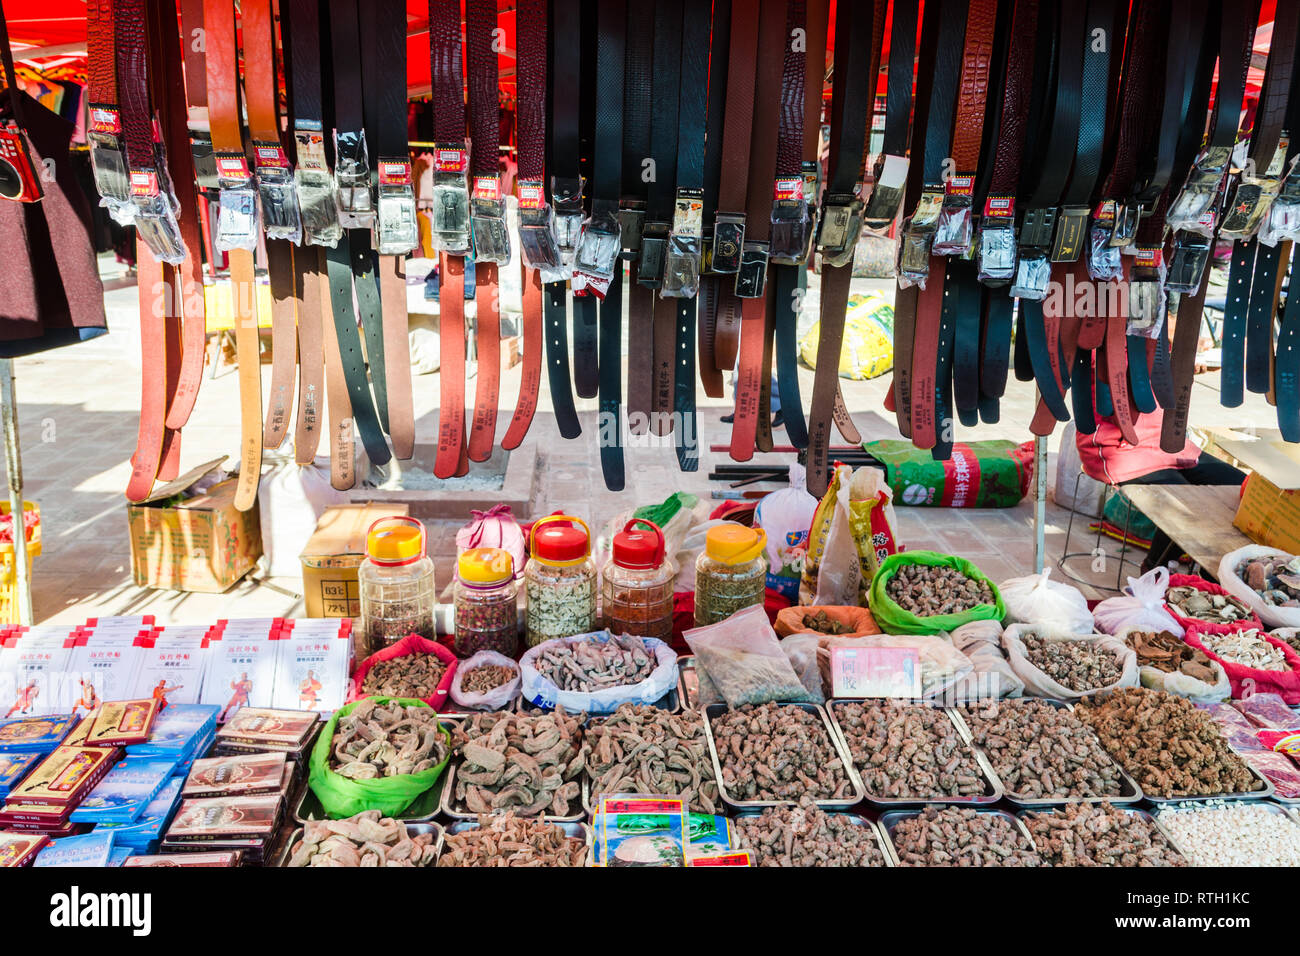 Friday Market in Shaxi, Yunnan province, China Stock Photo